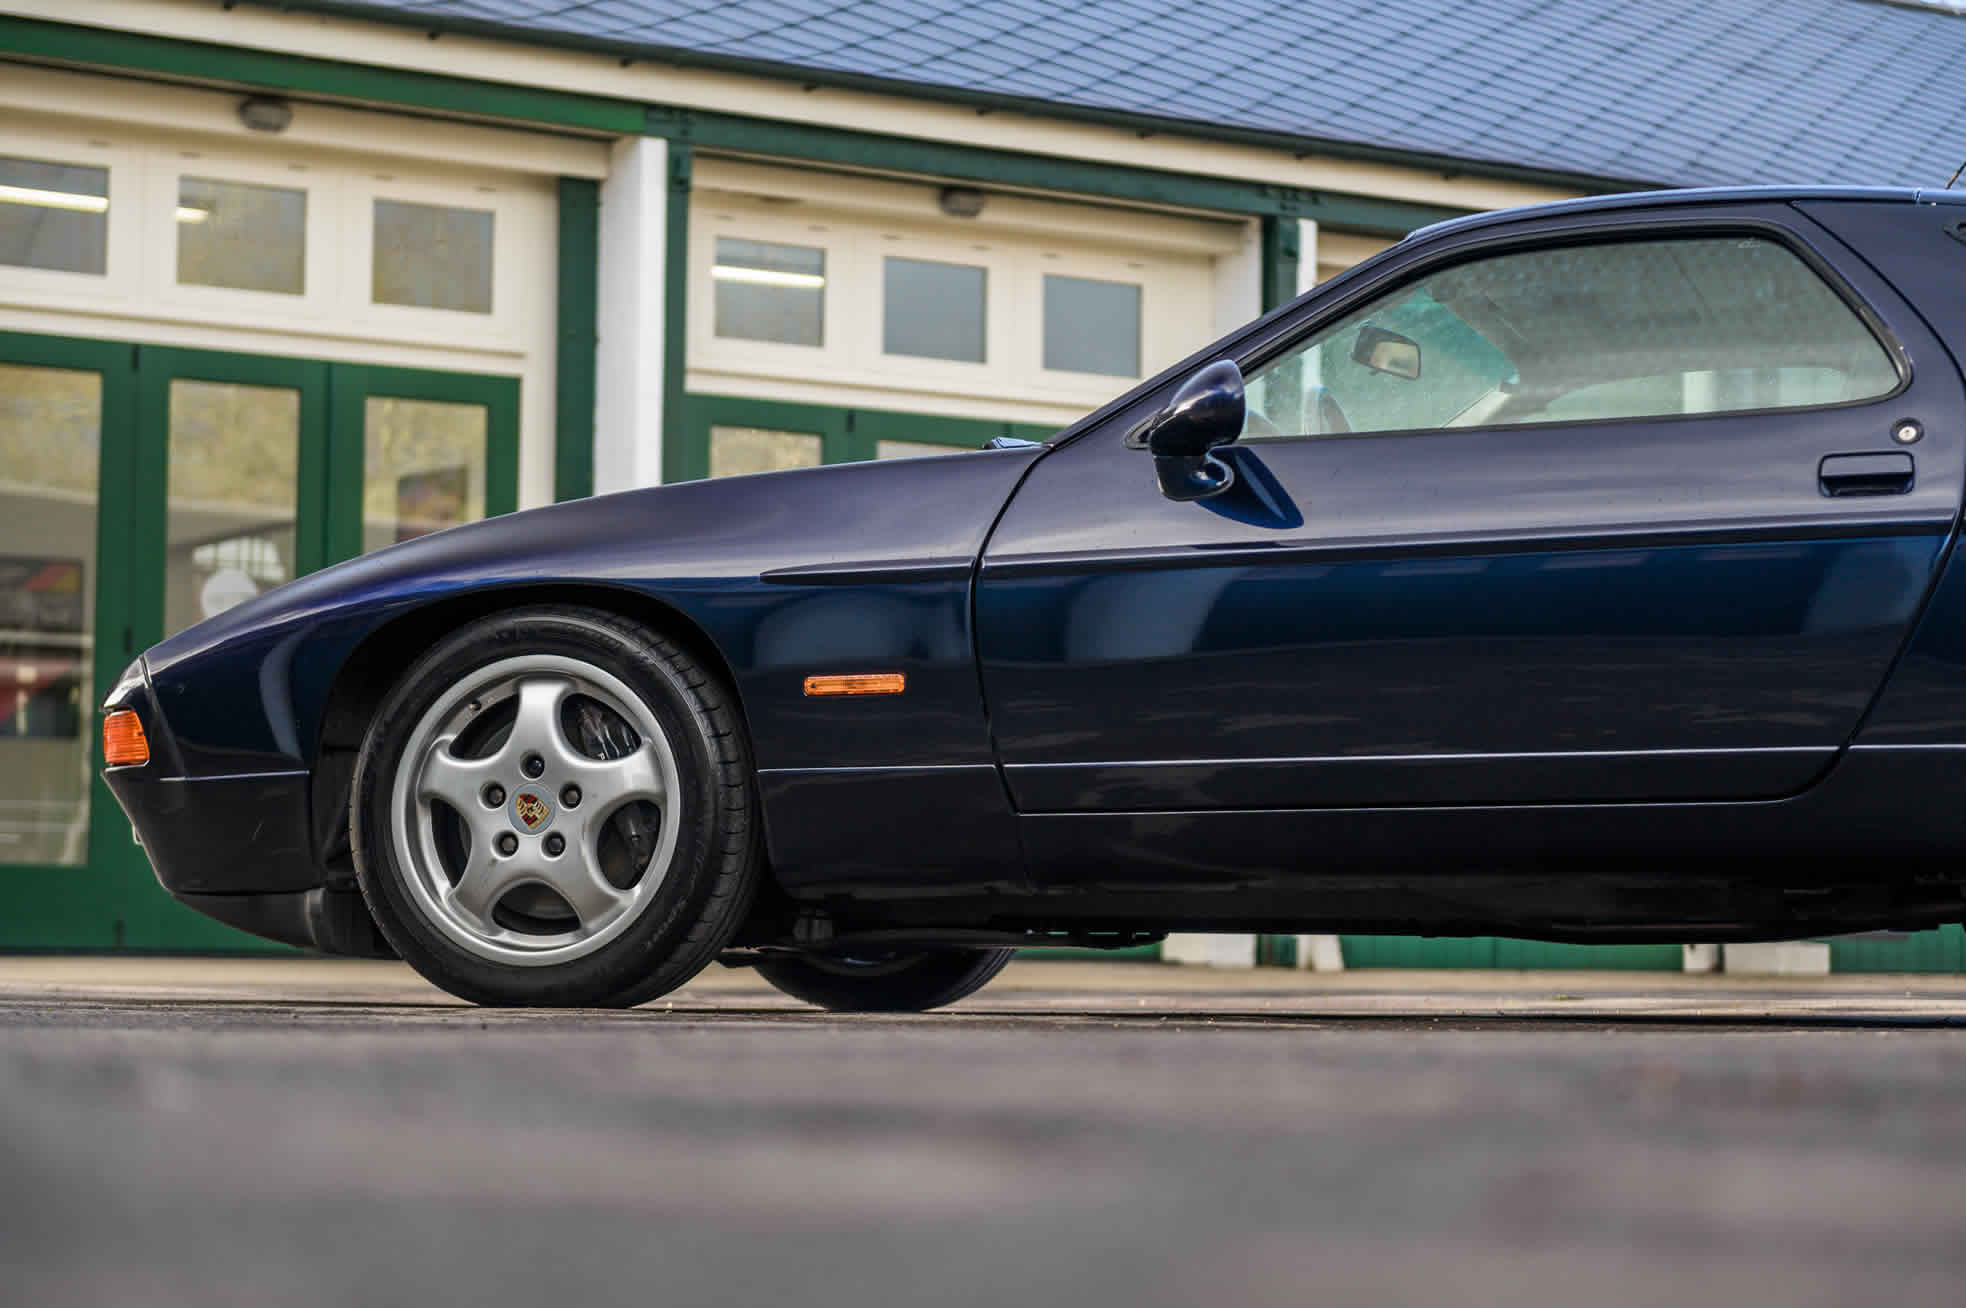 For Sale, 1992 Porsche 928 GTS, Sports Purpose Porsche Specialists, side profile